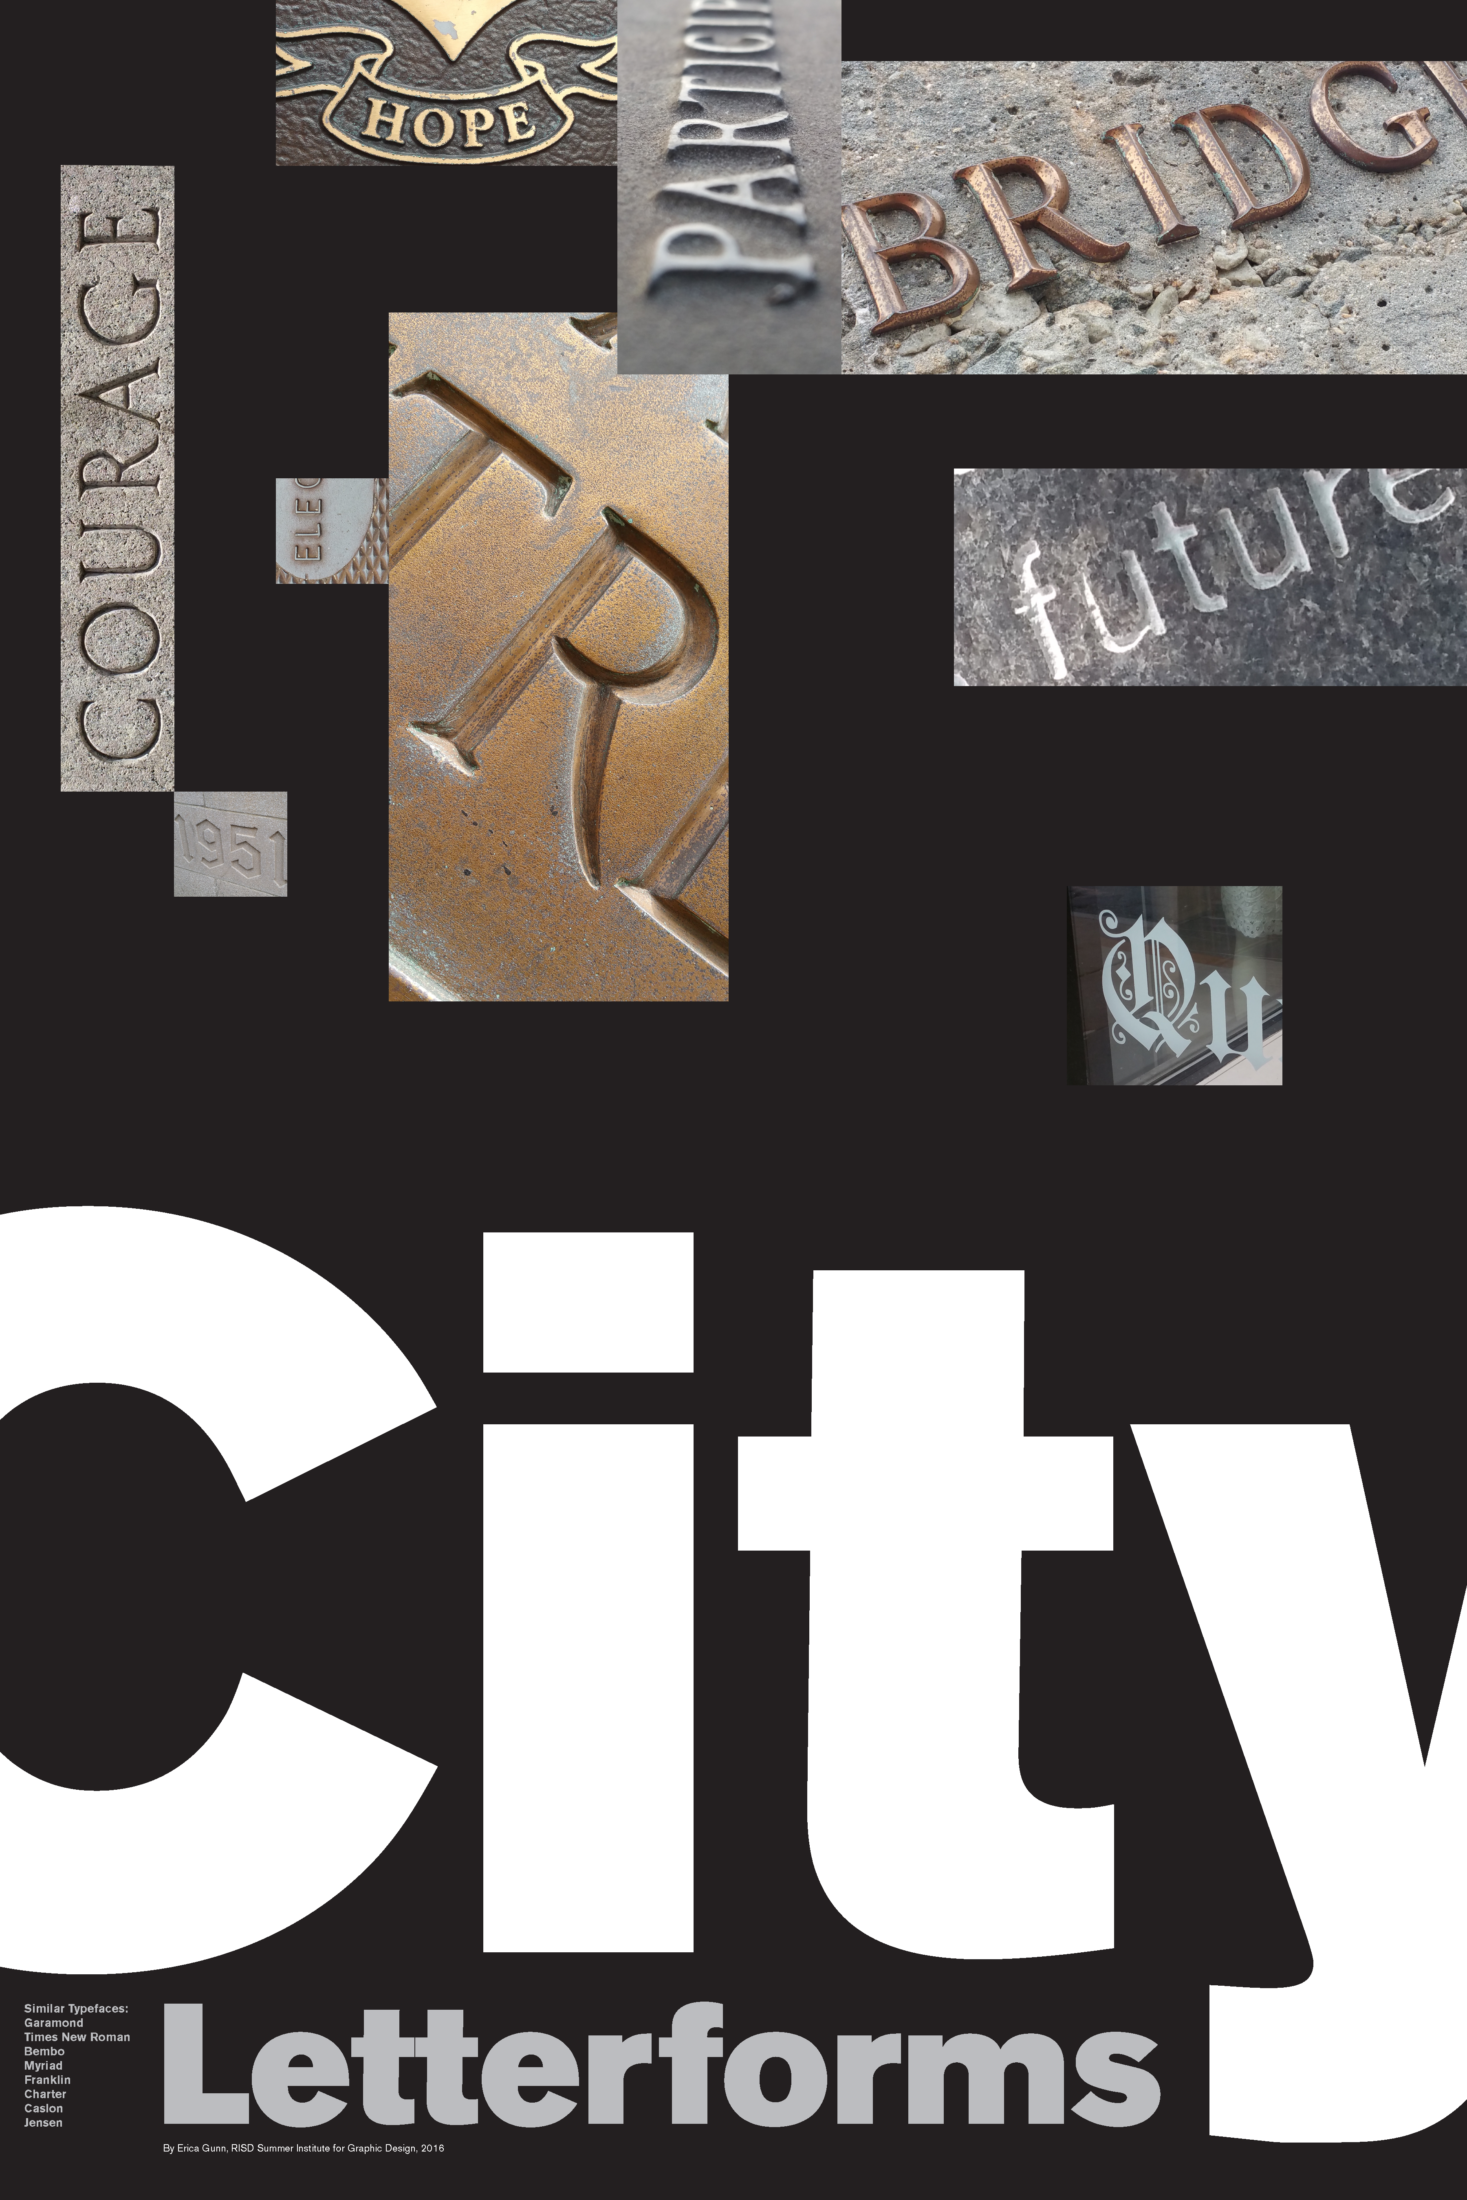 Gunn_CityLetterforms_Page_2